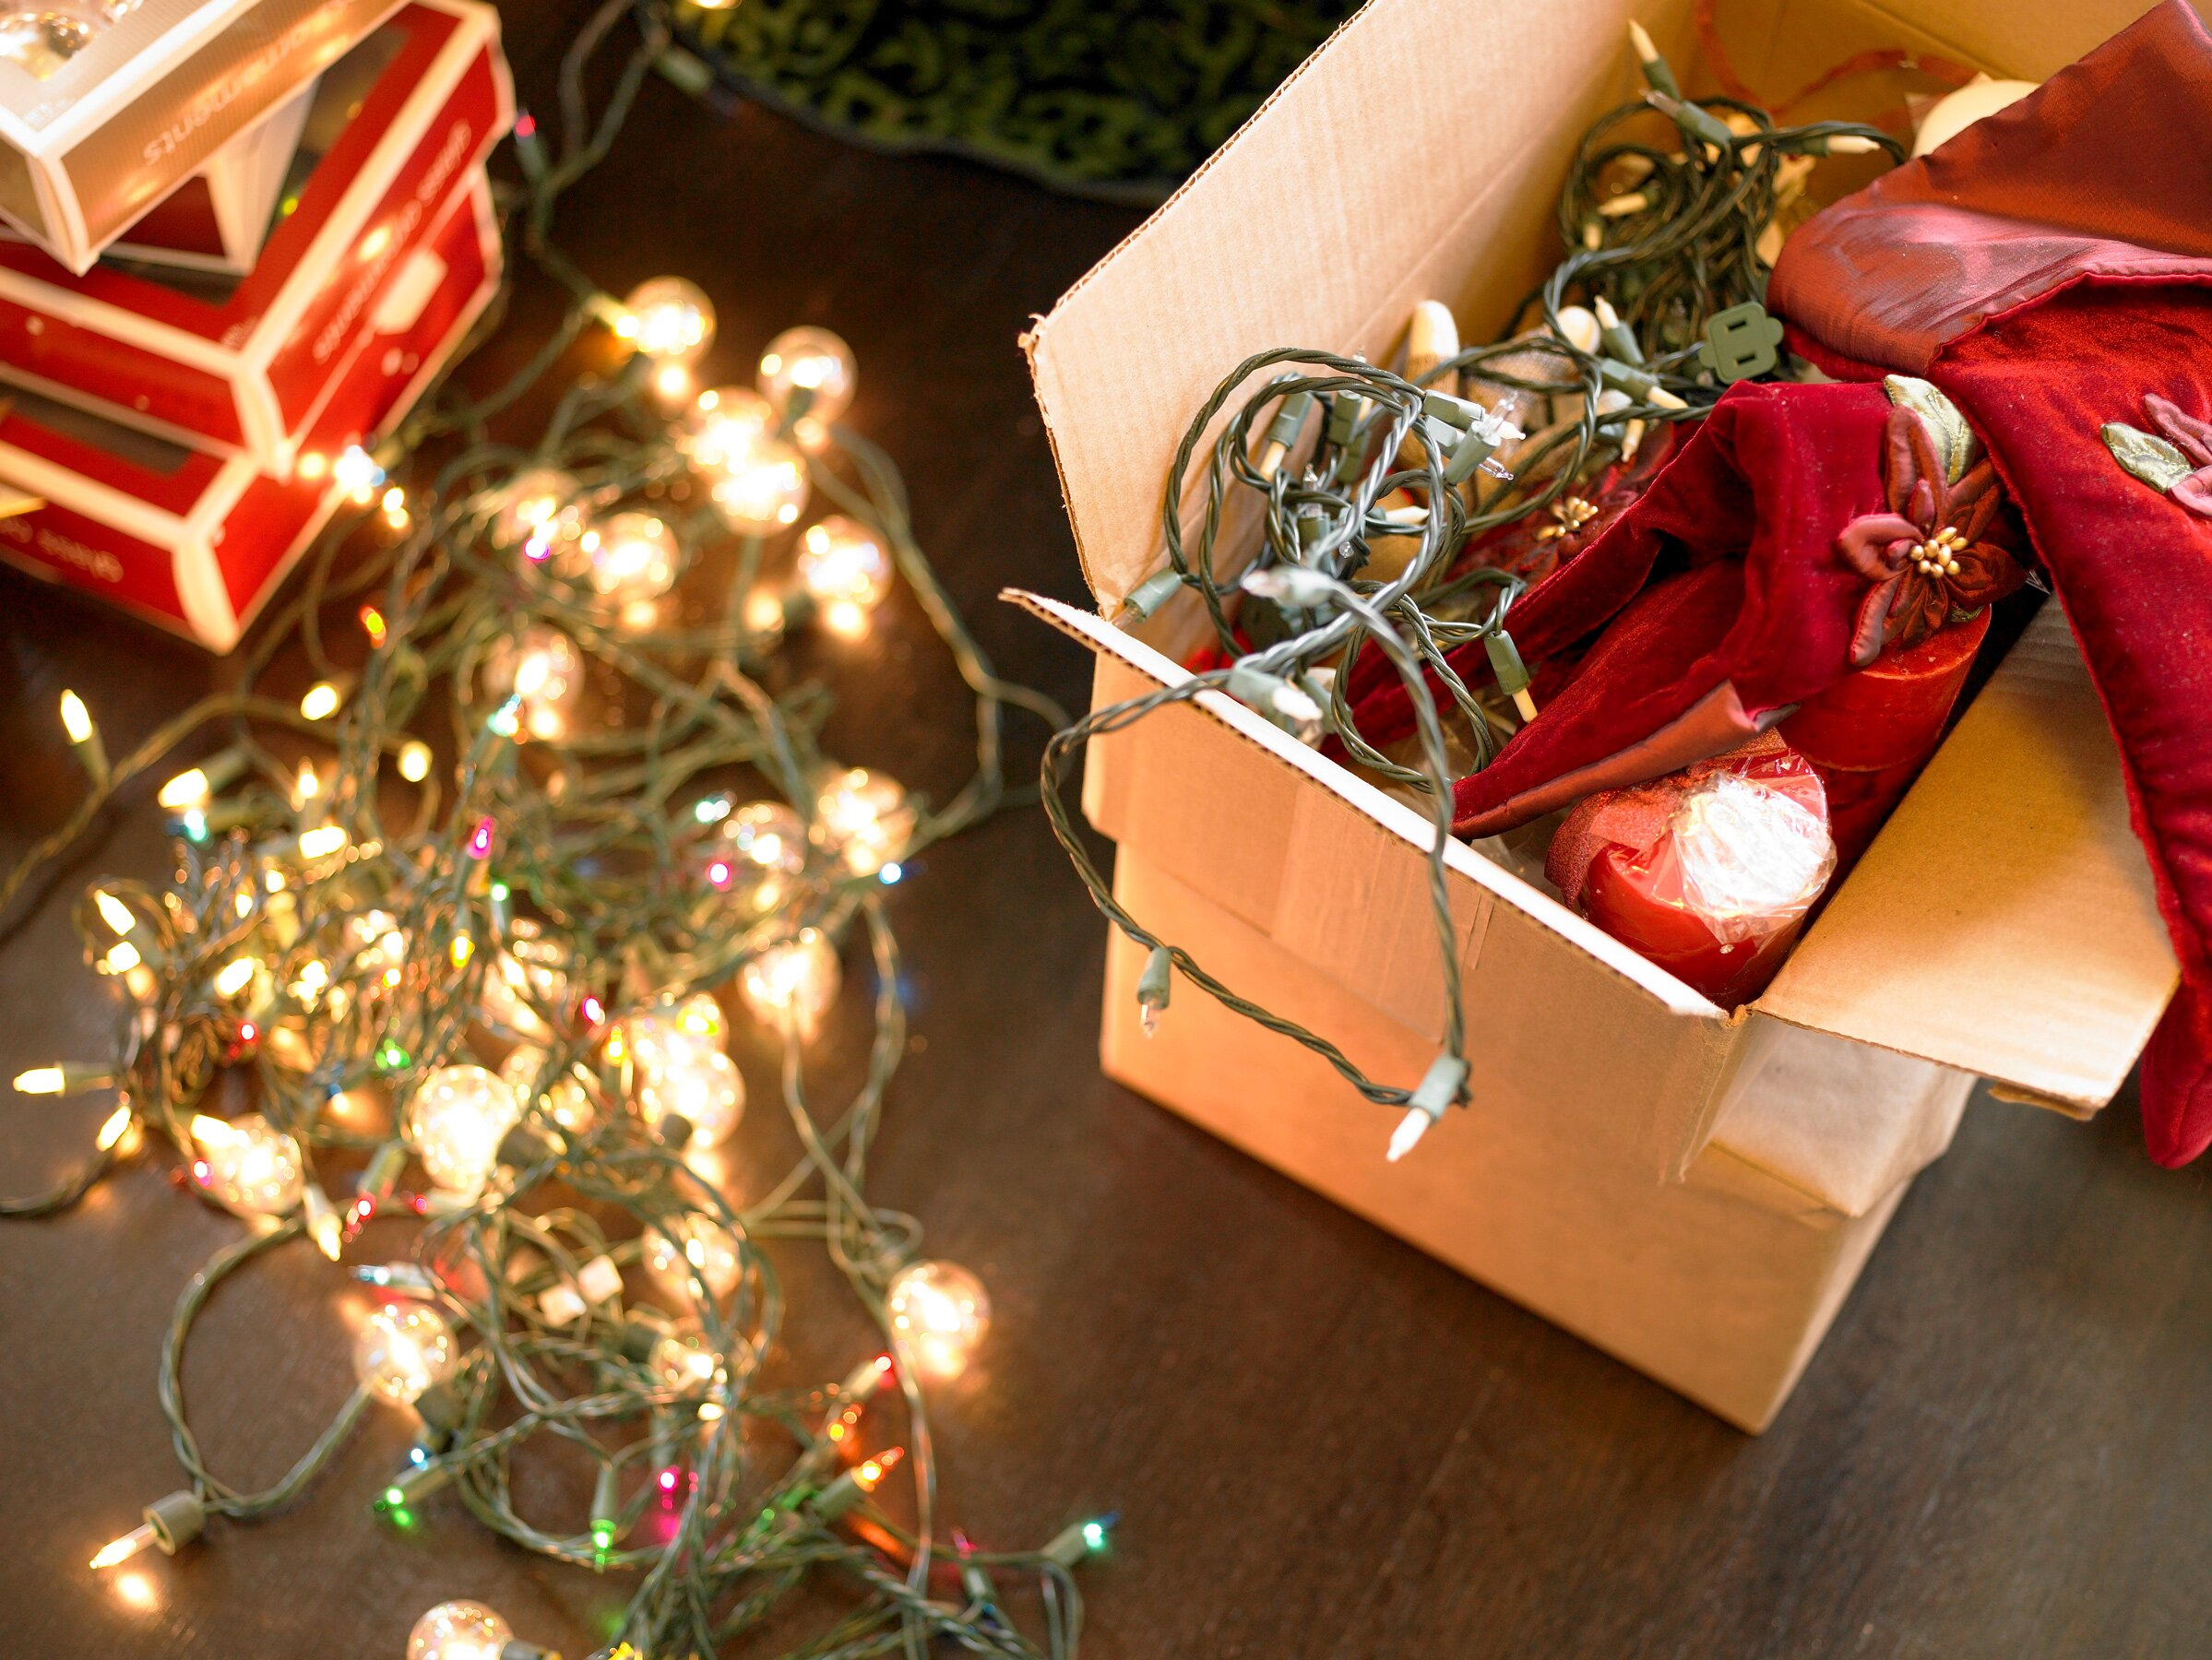 How To Hang Outdoor Christmas Lights.How To Hang Outdoor Christmas Lights Like A Professional